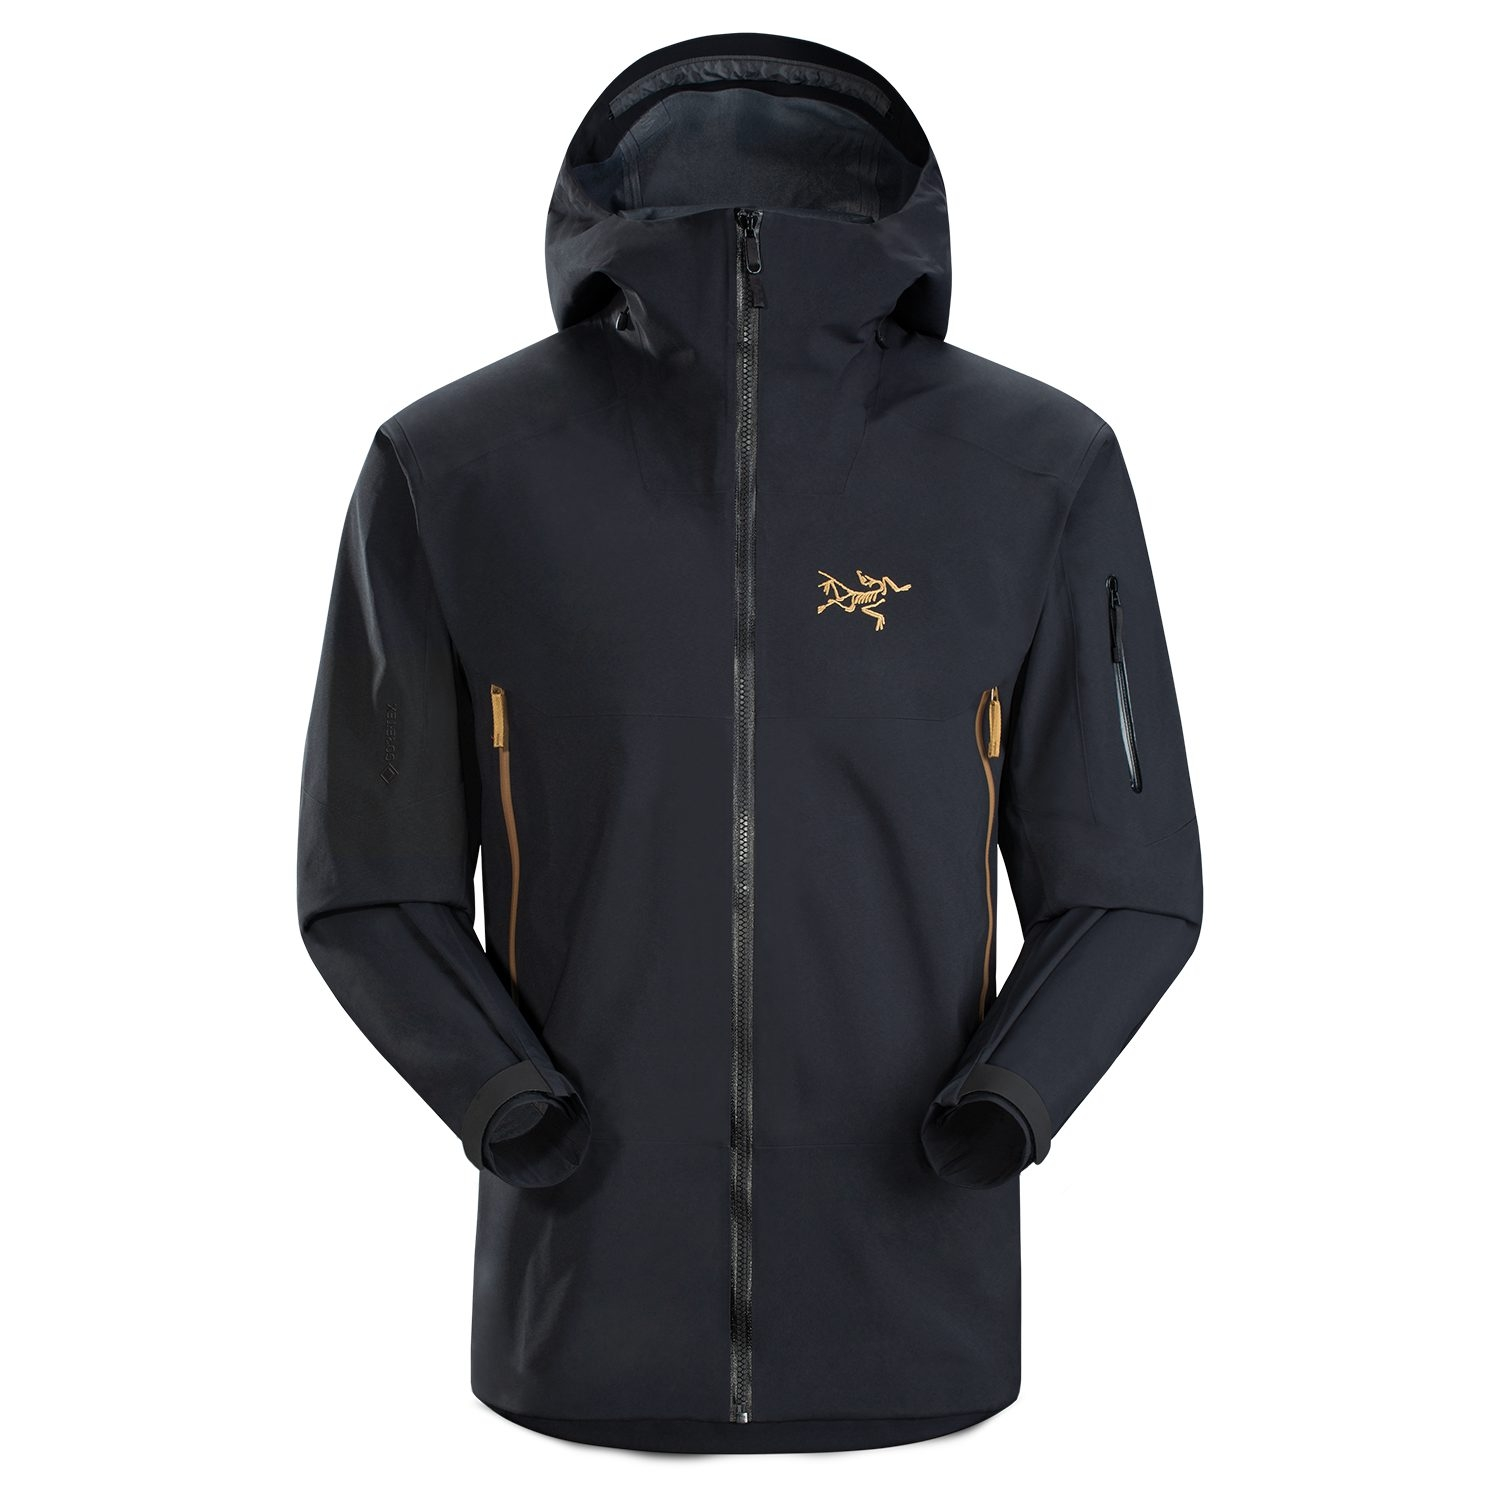 Arcteryx Sabre Mens Jacket 24K Black 2020